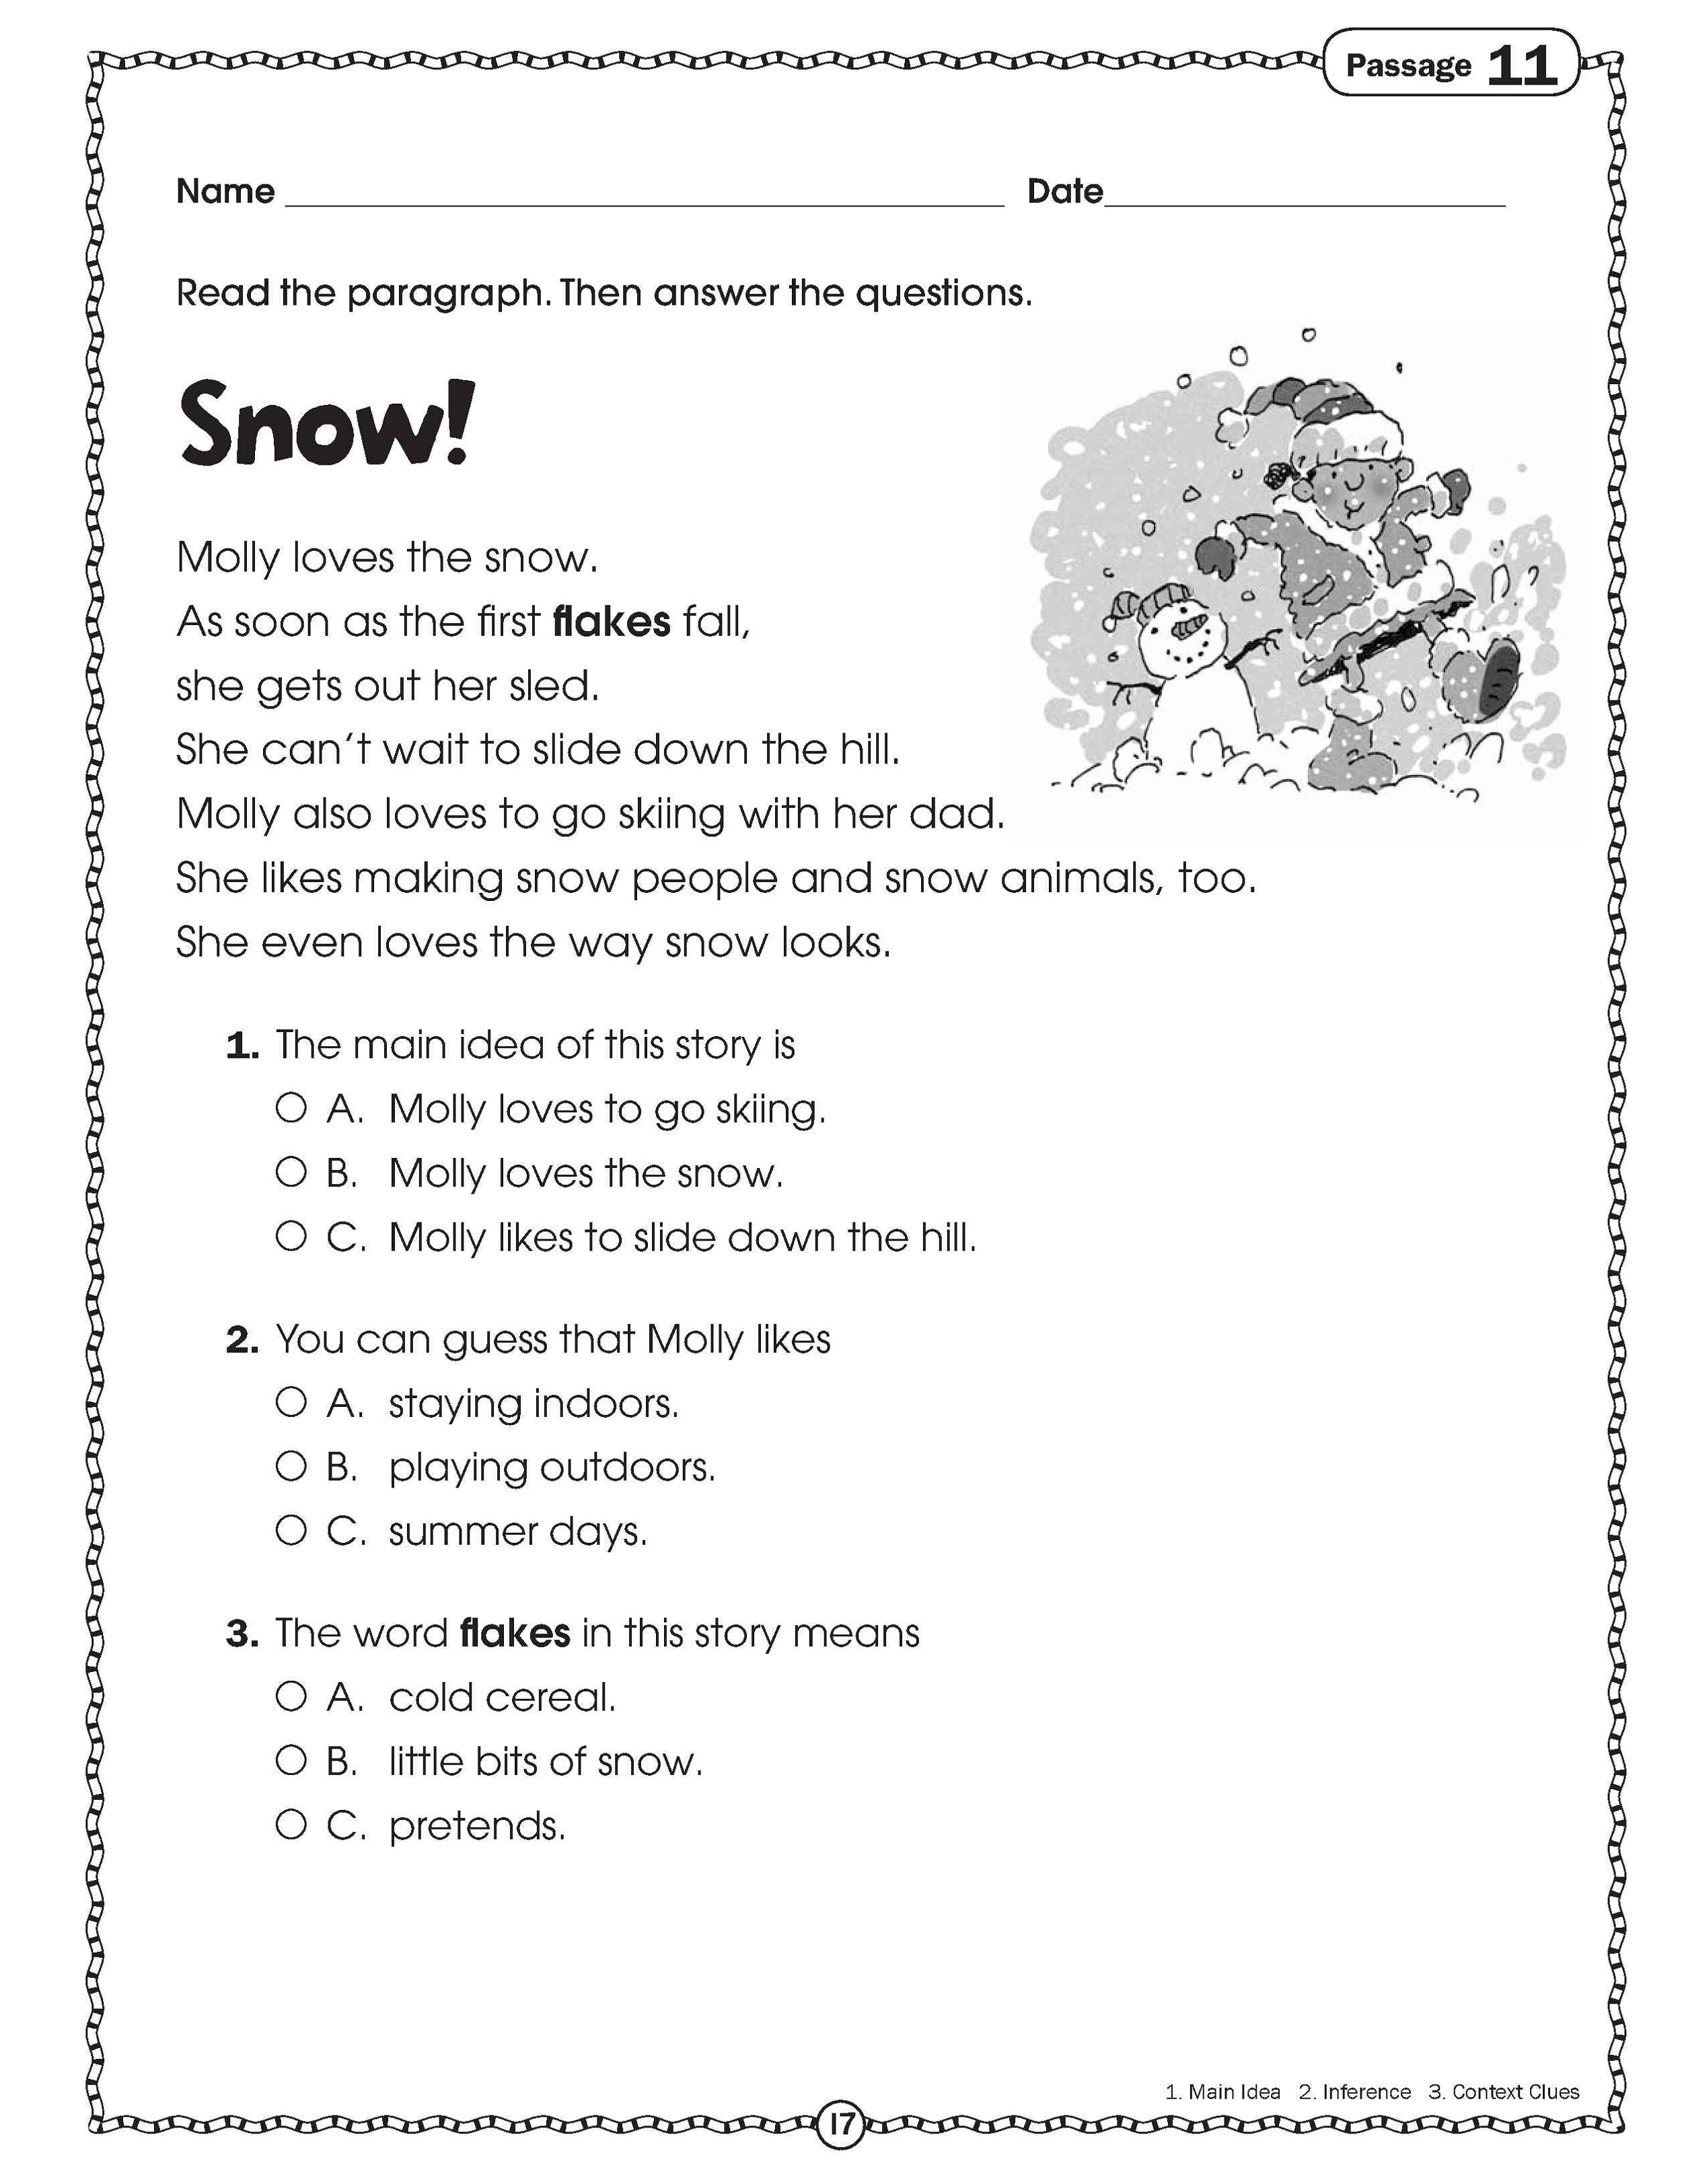 Free Printable Worksheets For Elementary Students All Themes